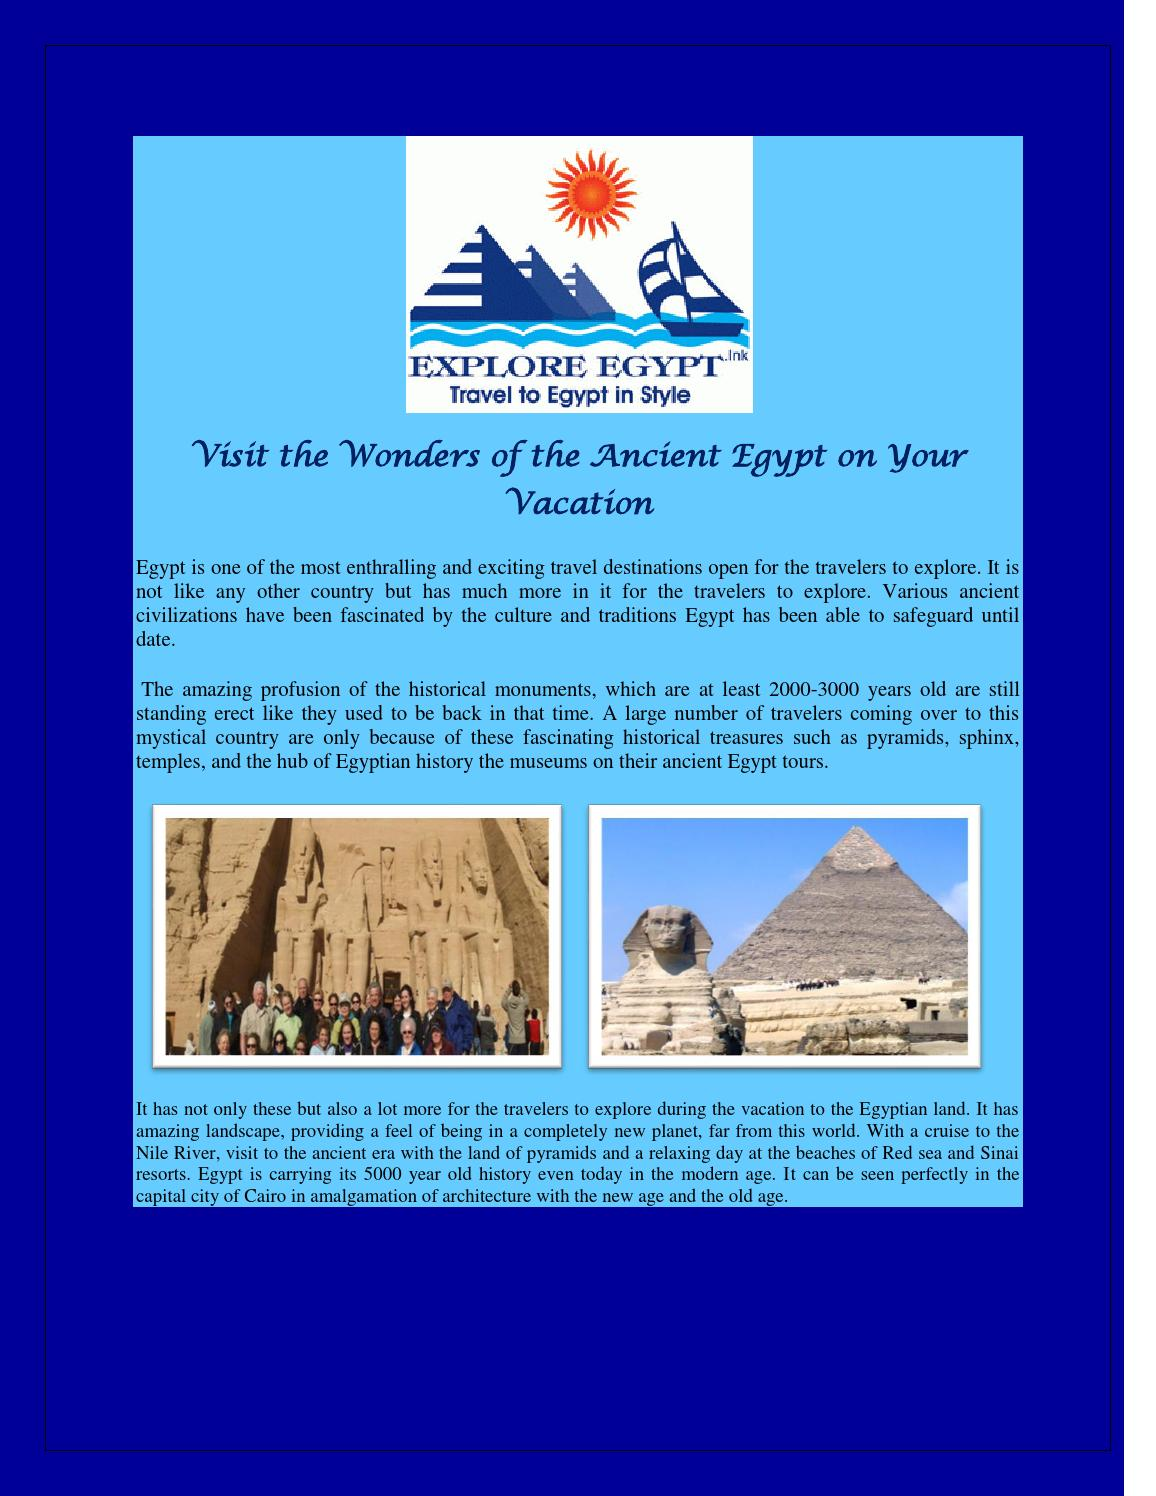 Visit the wonders of the ancient egypt on your vacation by